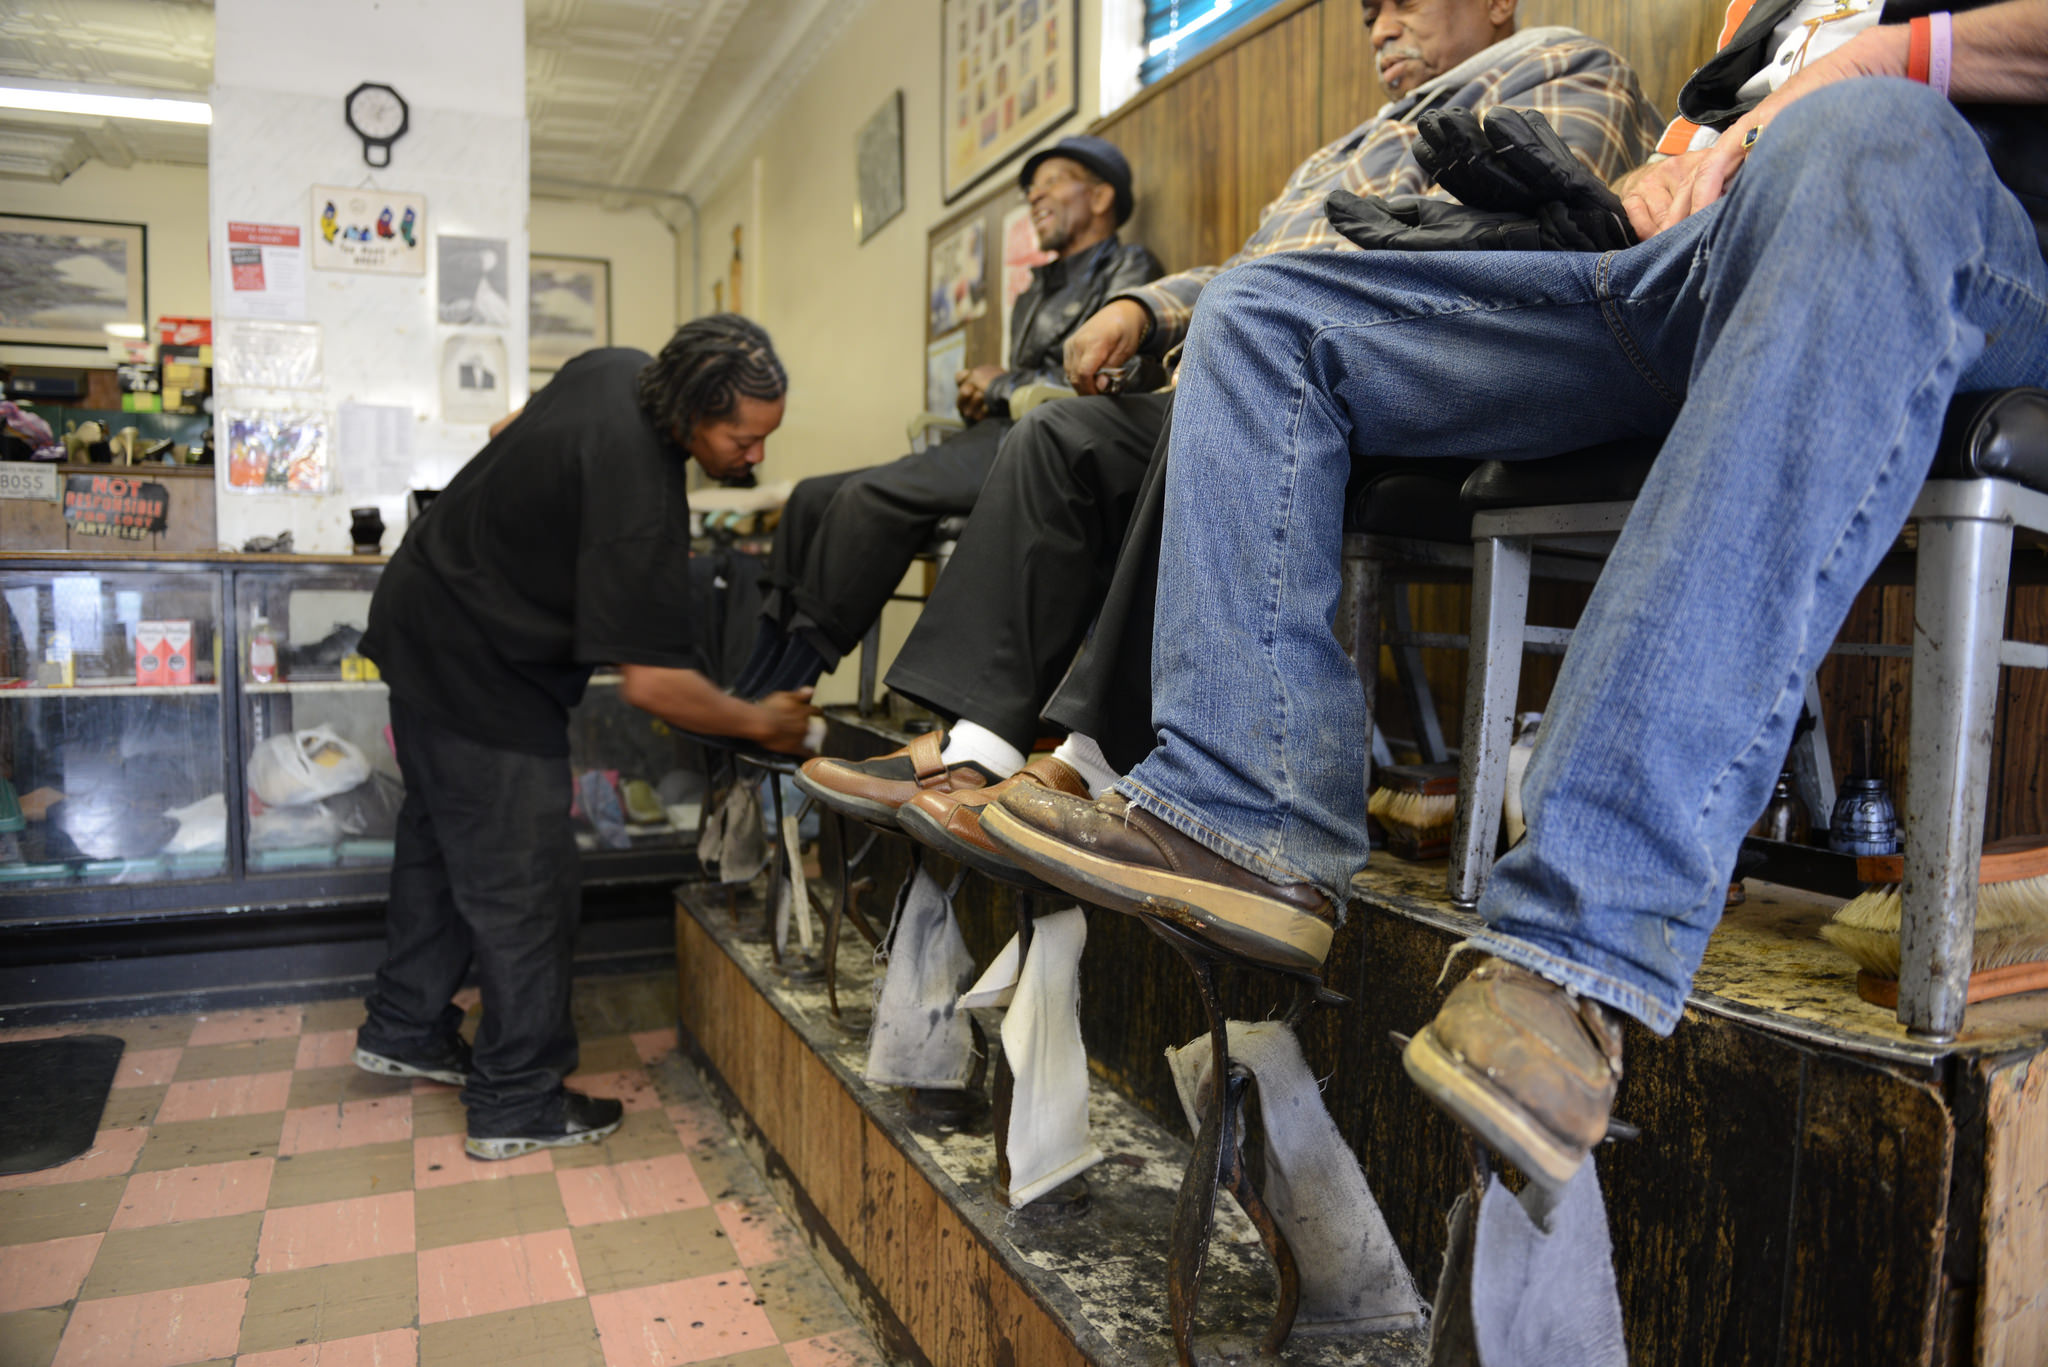 Jerrell Washington shines shoes at Scruggs & Sons Shoe Repair. (Photo by Sue Vliet)